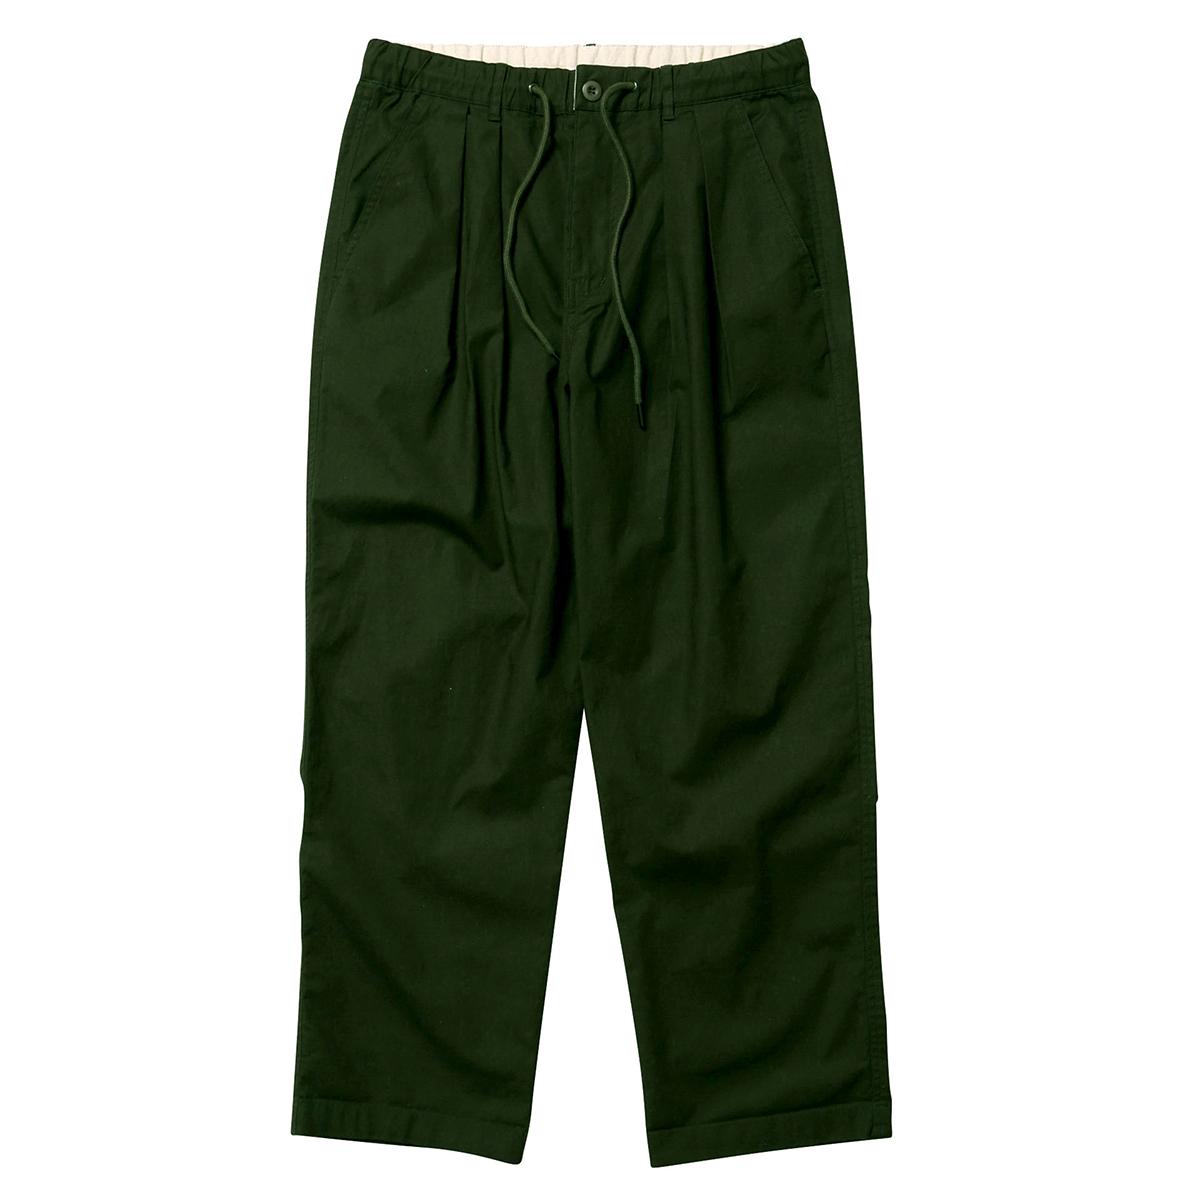 RELAX PANTS / GS21-HPT02